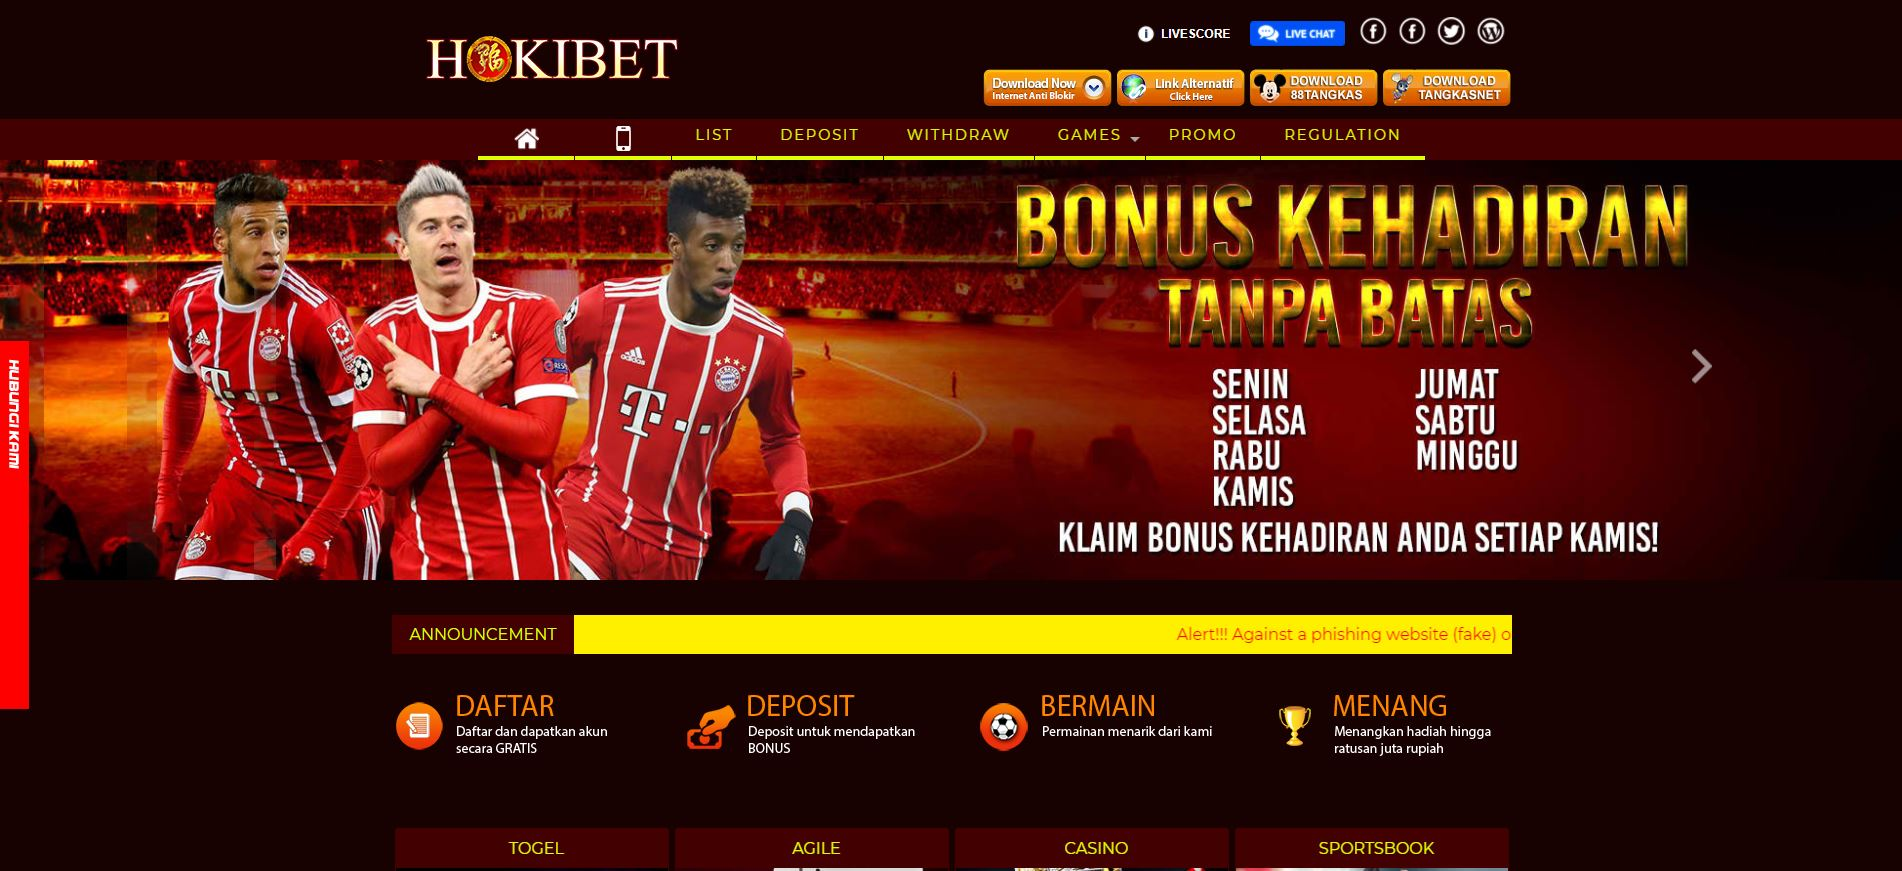 Hokibet Online Betting Website: A Quick Review